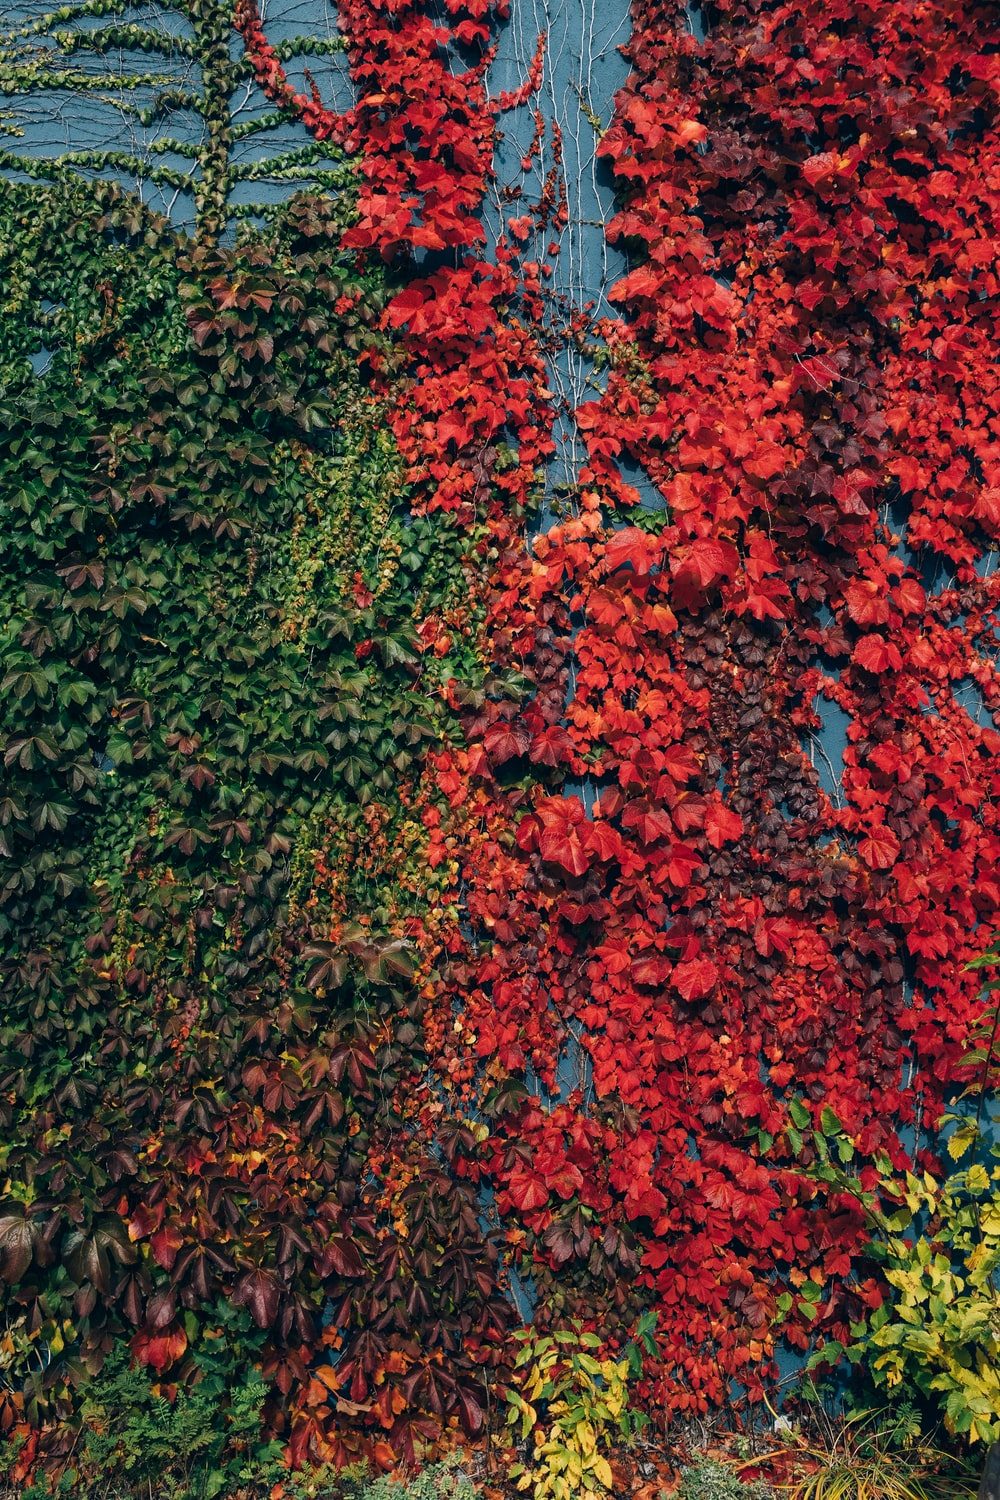 red and green leaves on ground